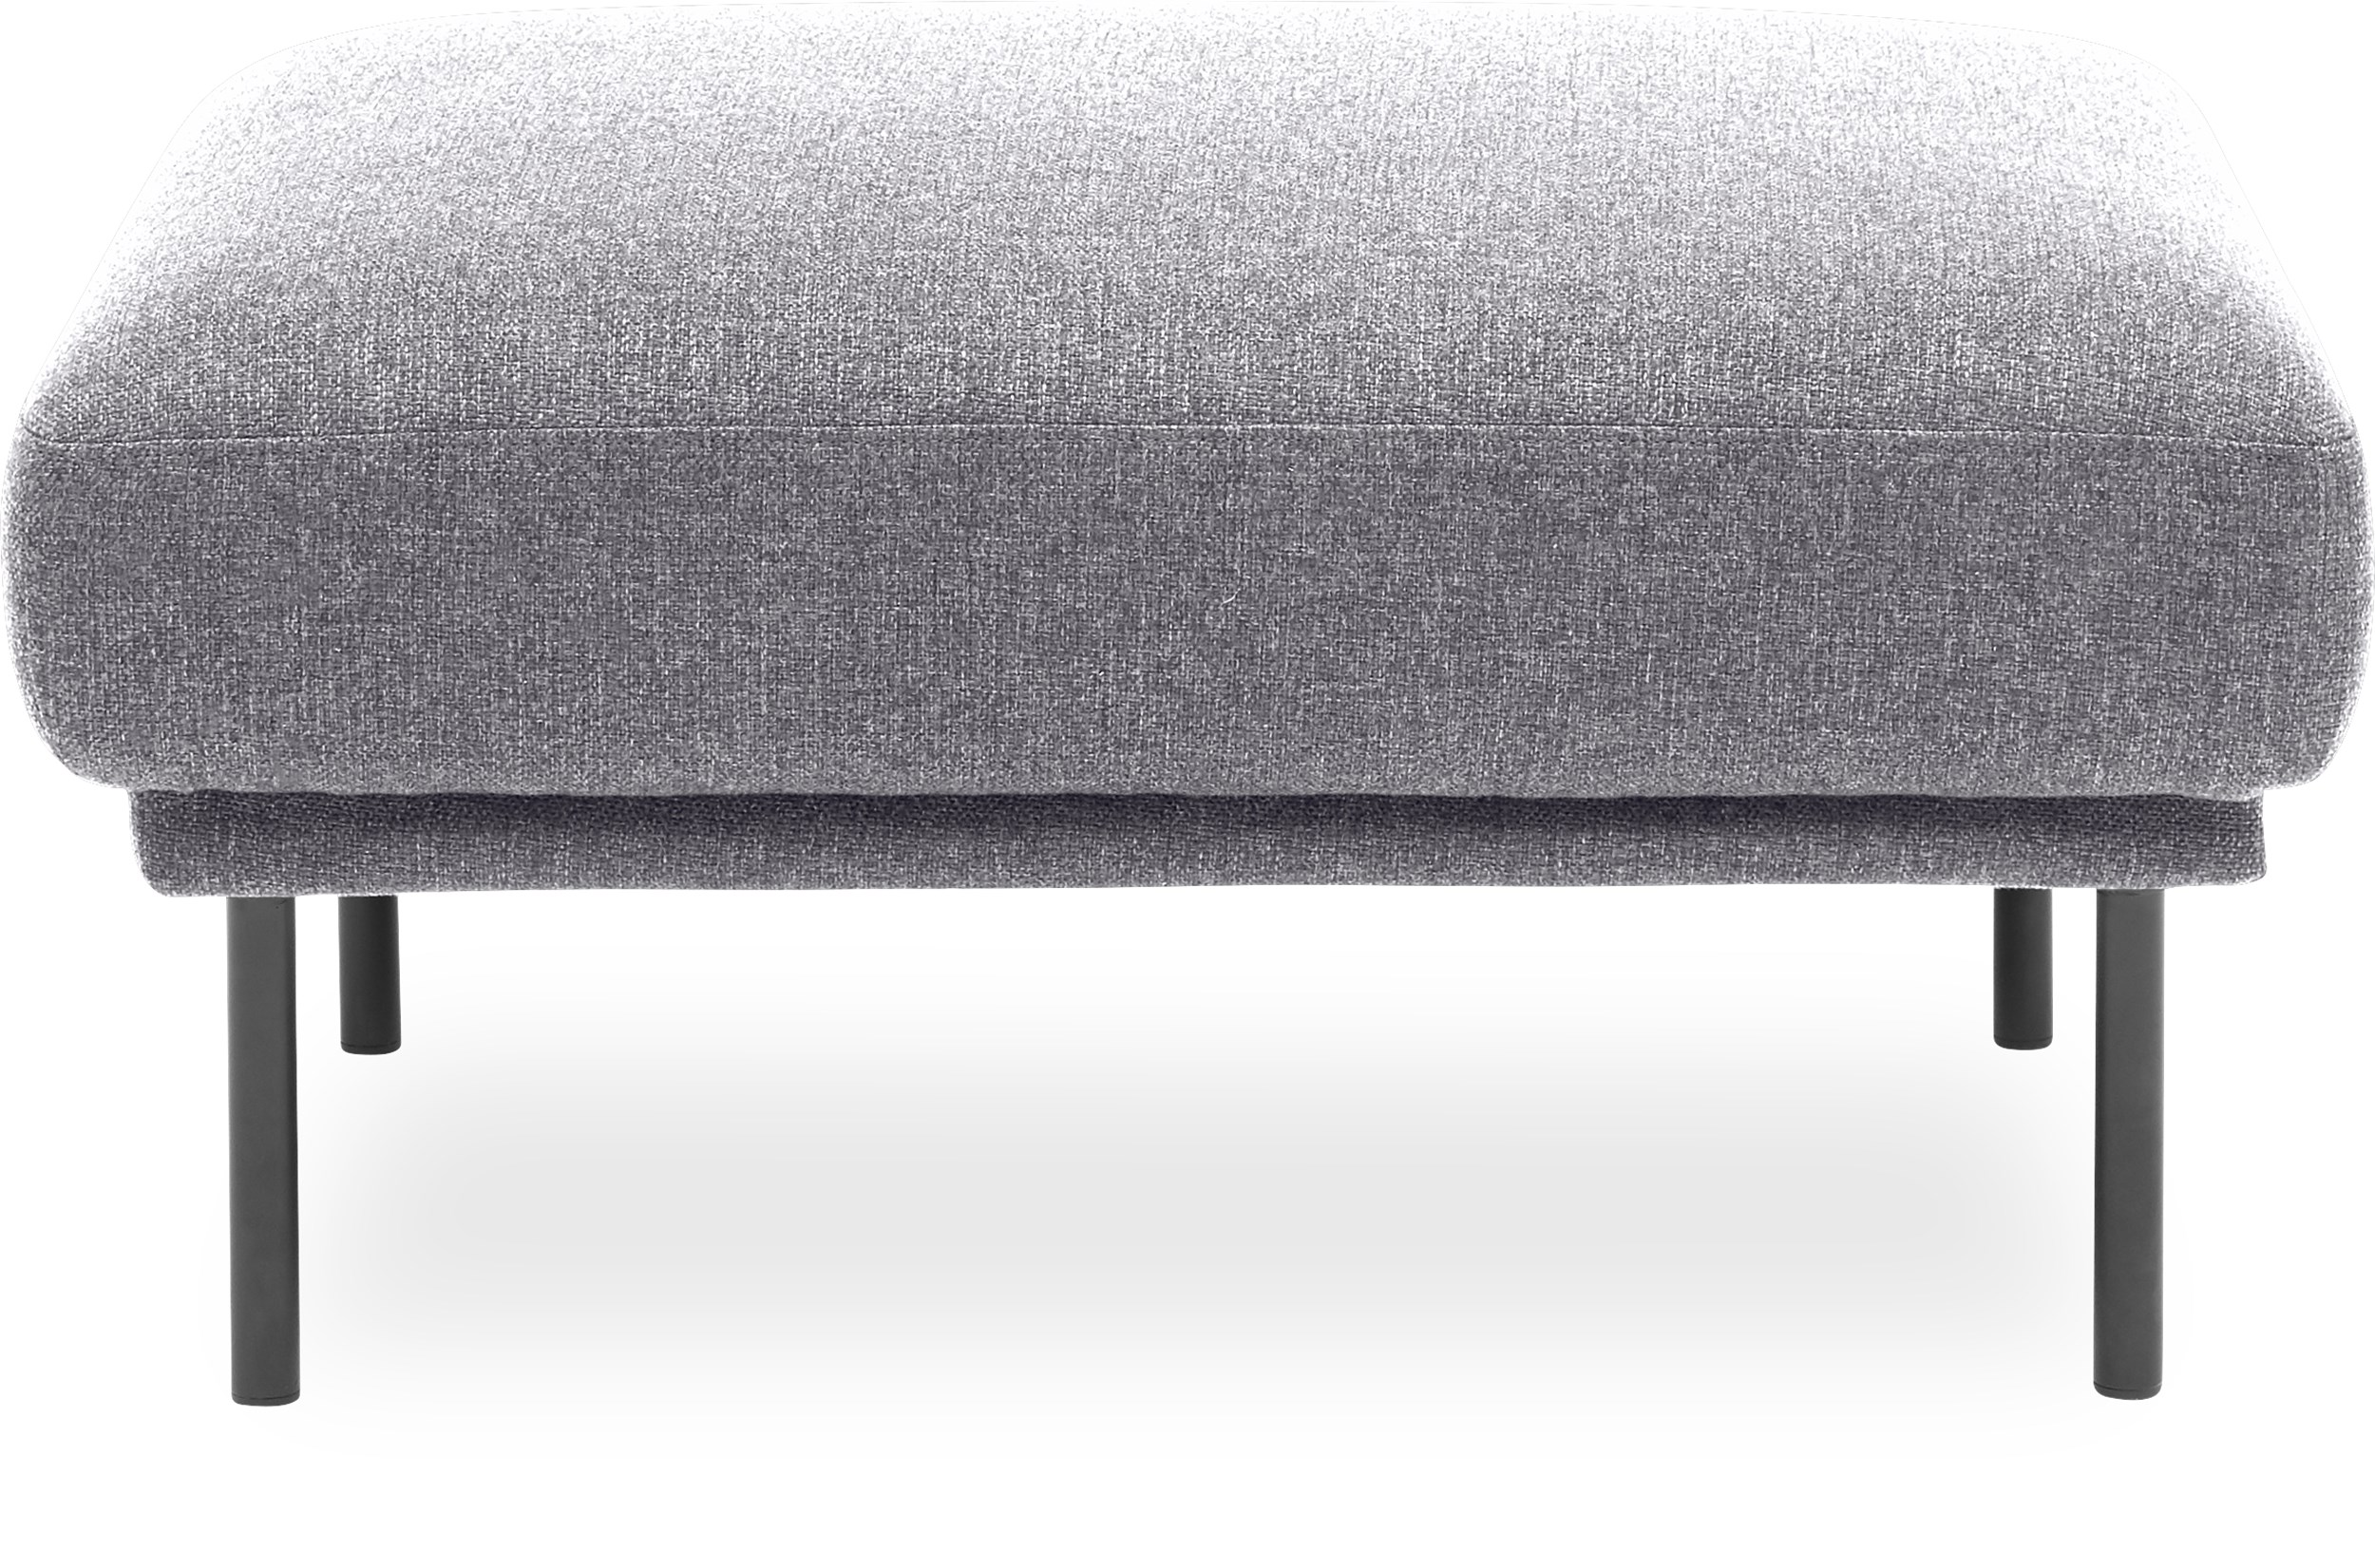 Larvik Sofa puf - Hampton 372 Light grey stof og ben i sortlakeret metal